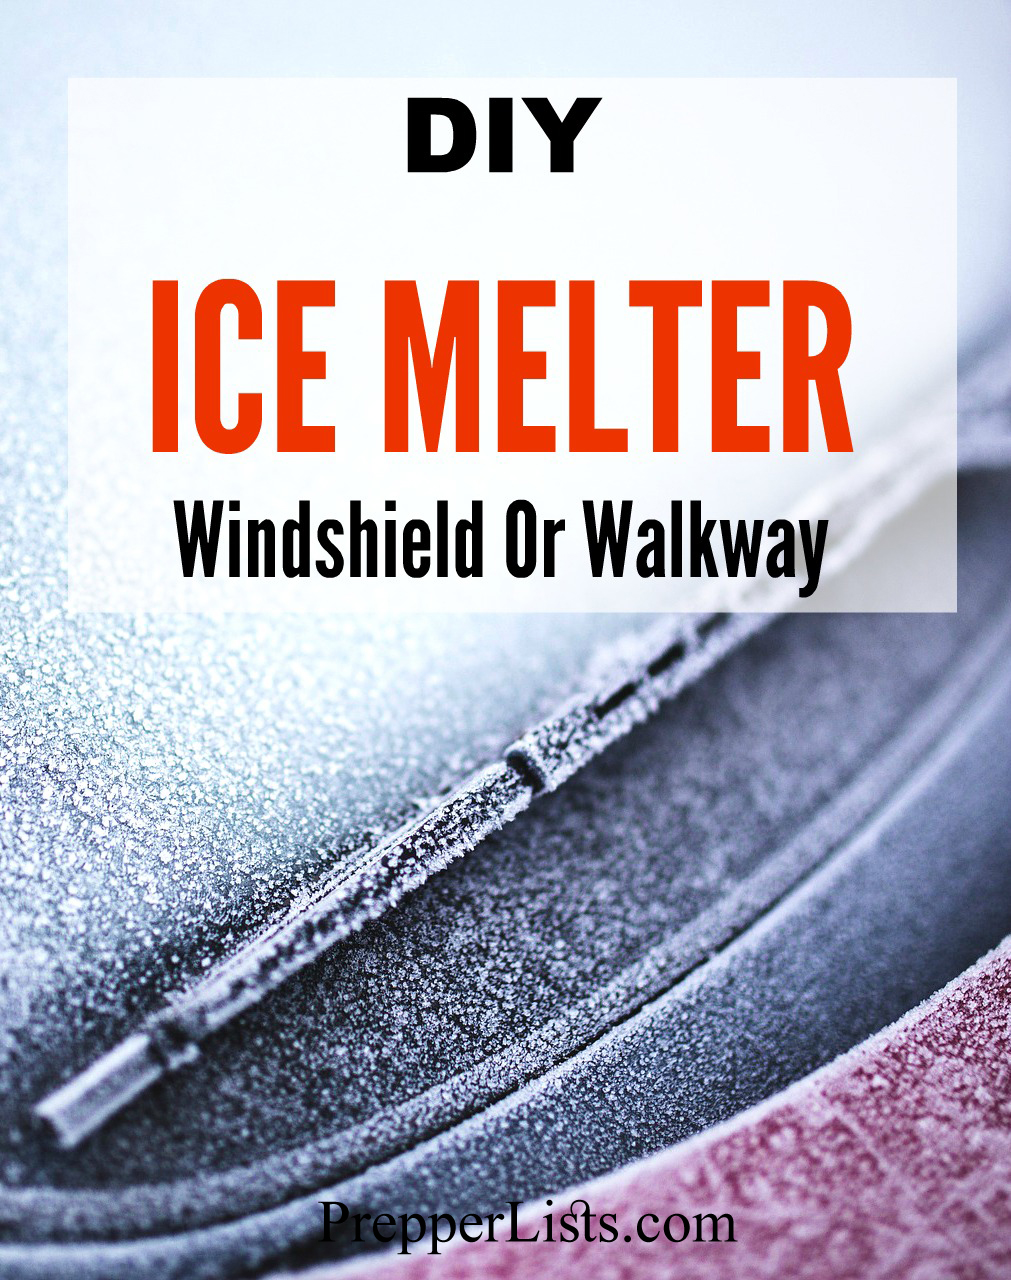 DIY Ice Melter For Your Windshield Or Walkway